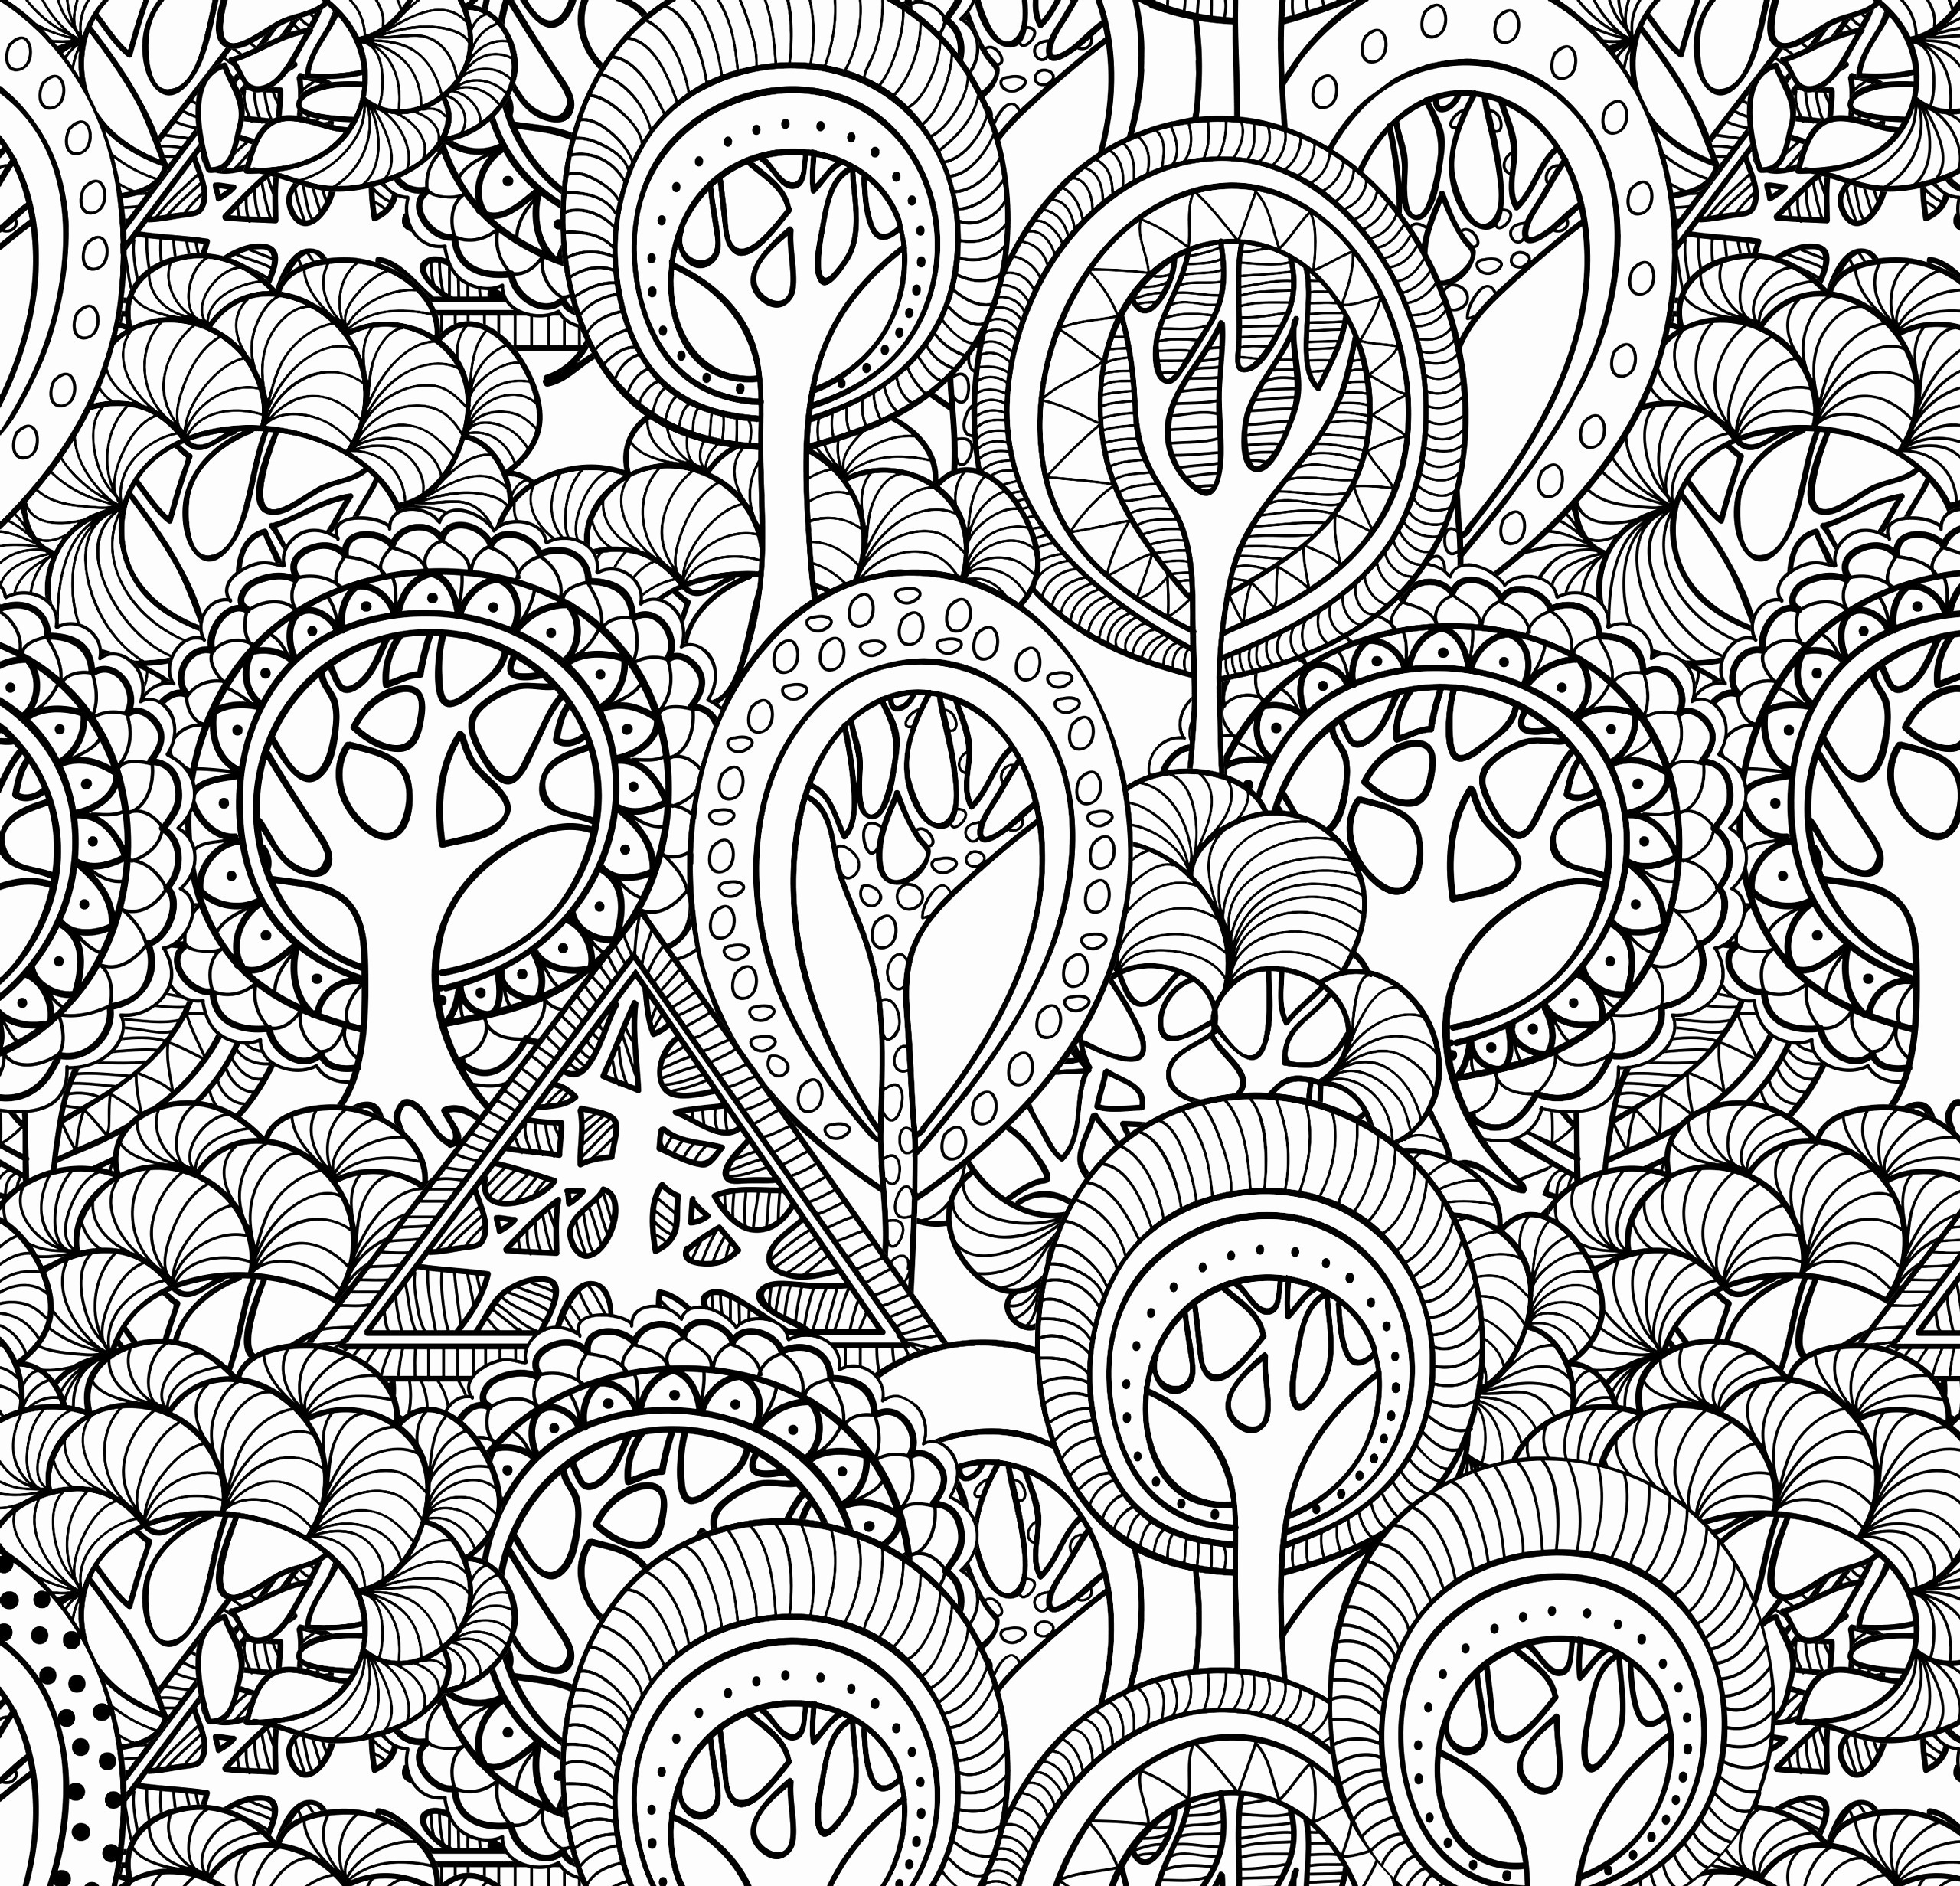 safety signs coloring pages Download-Road Safety Coloring Pages 34 Beautiful Bike Coloring Pages Cloud9vegas 20-l